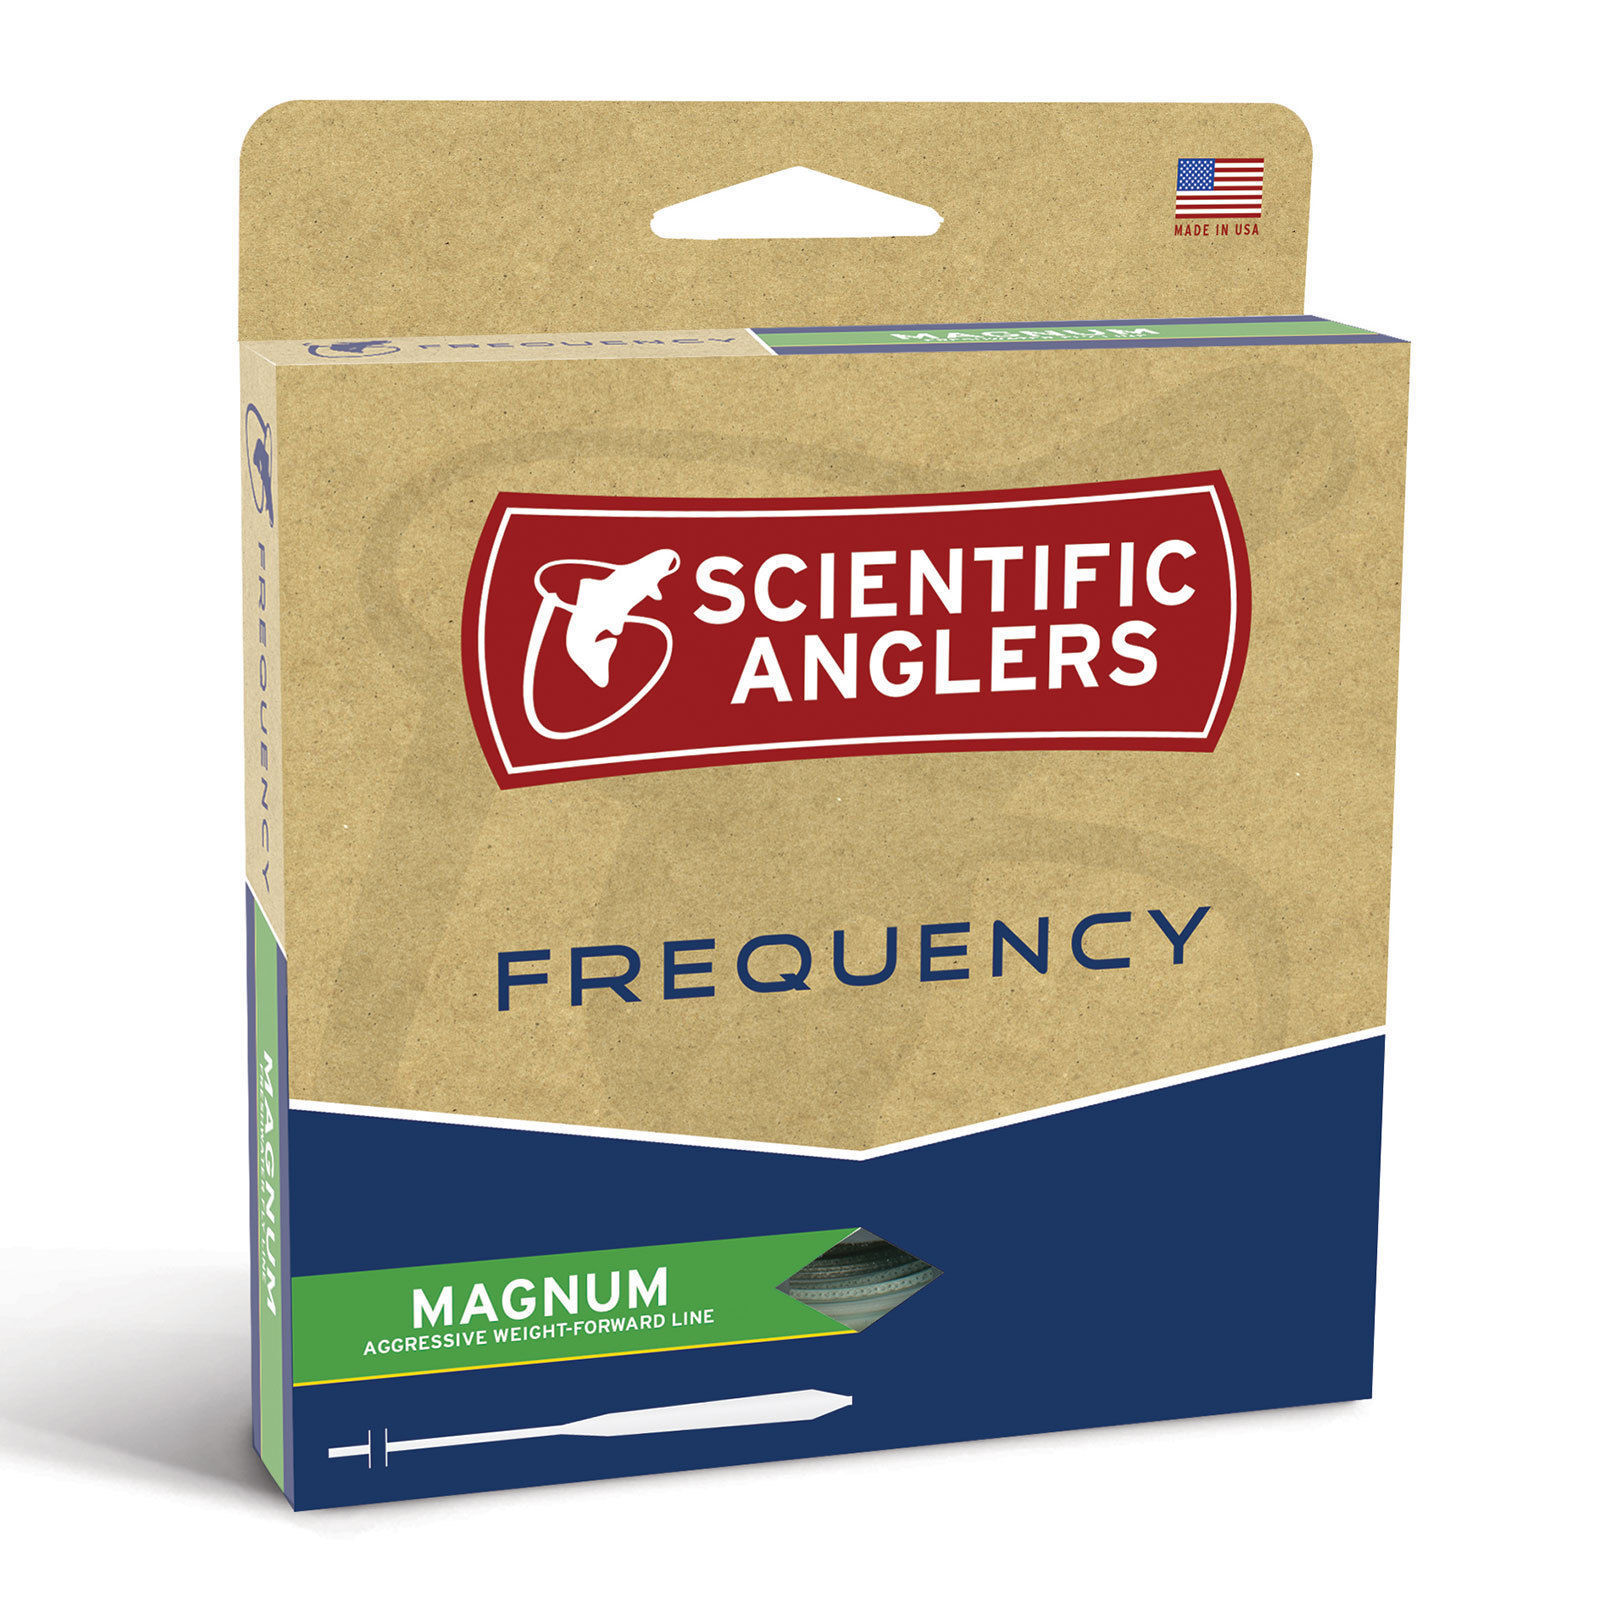 SCIENTIFIC ANGLERS FREQUENCY MAGNUM GLOW IN THE DARK WF6F  6 WEIGHT FLY LINE